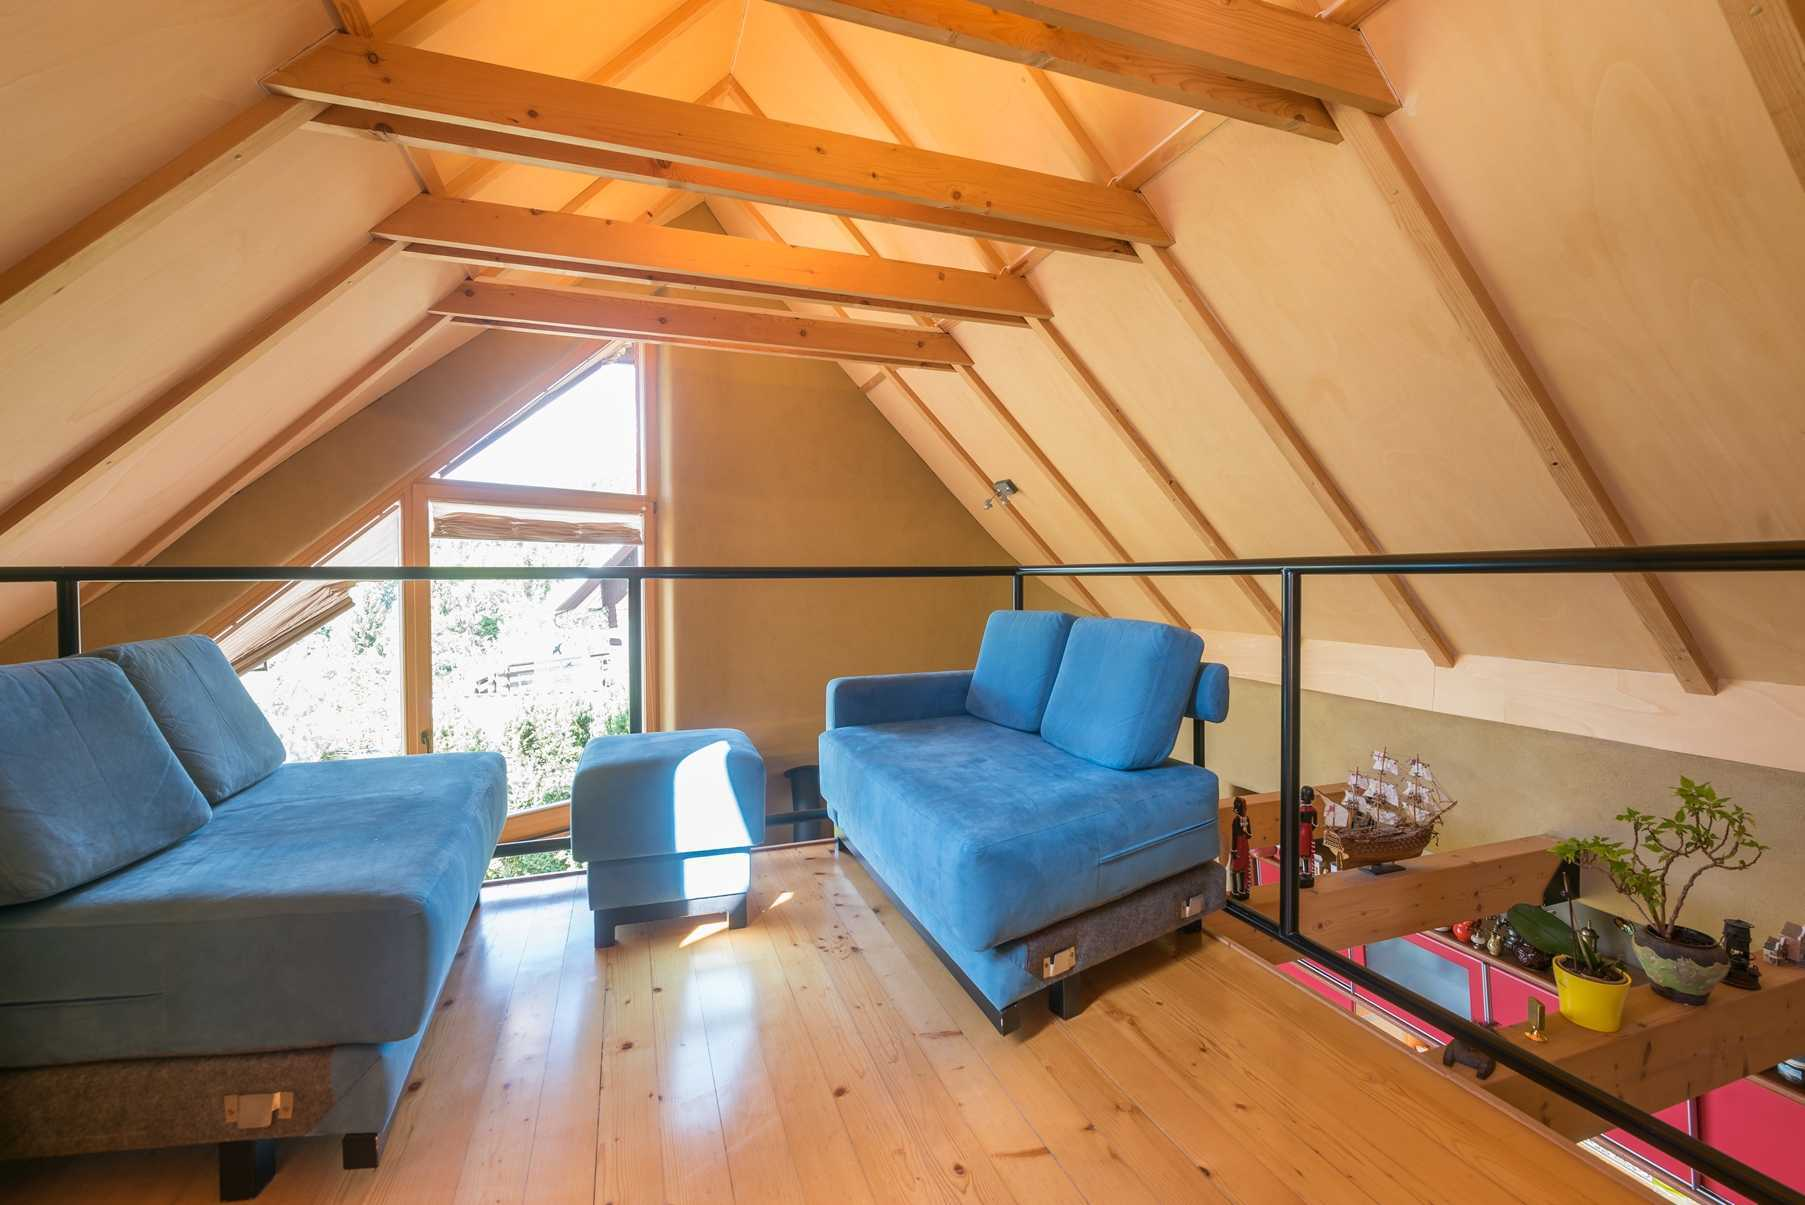 The loft area has two blue sofas.